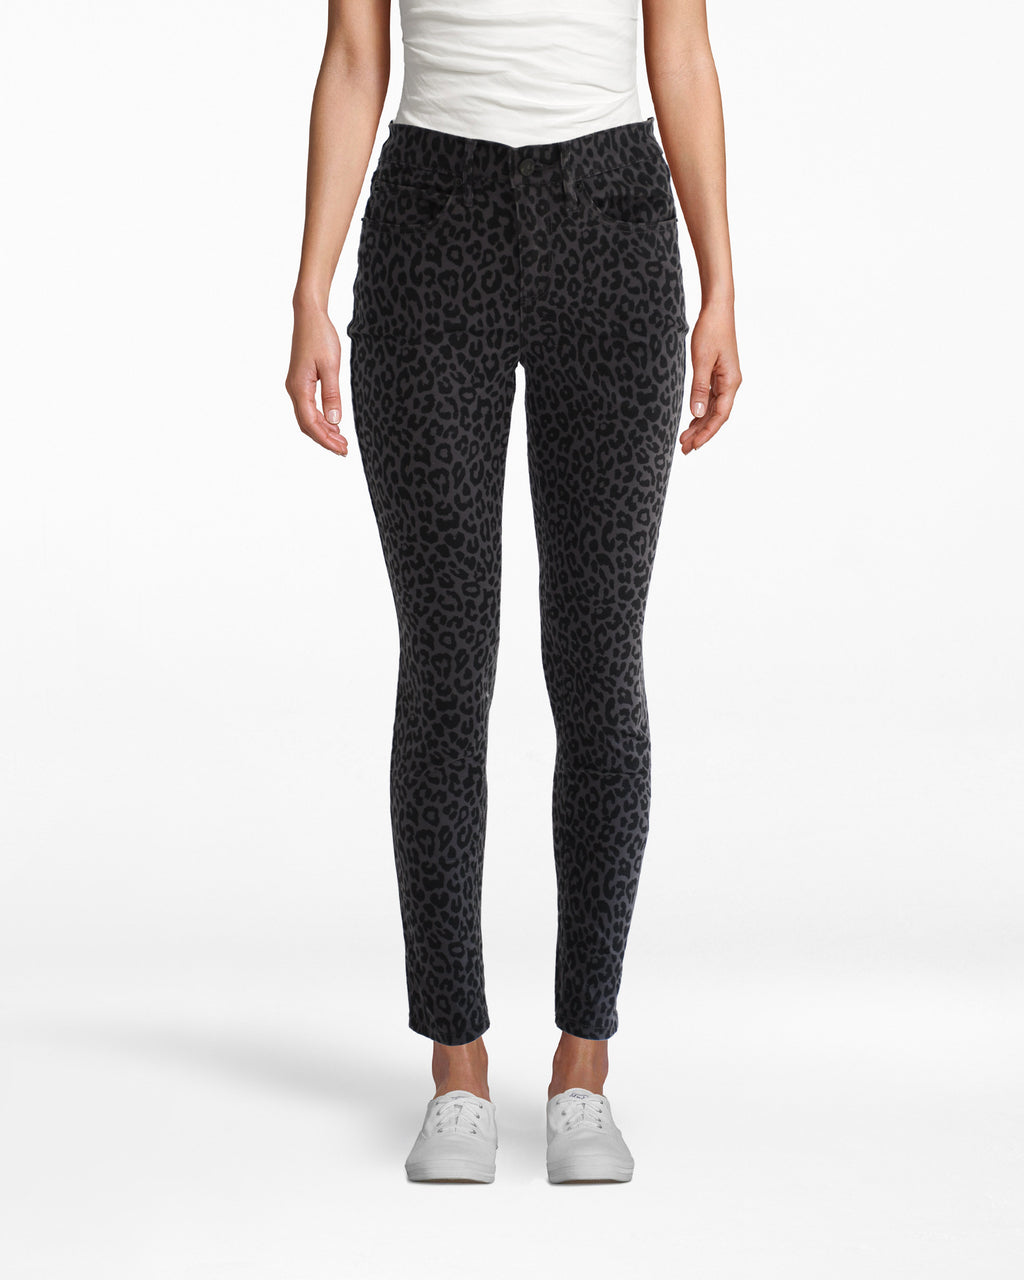 LP18223 - LEOPARD SKINNY JEAN - bottoms - denim - The new neutral. Our leopard print skinny jeans are made from super soft denim and go with just about everything. Add 1 line break Stylist Tip: Wear with an oversized sweater and sneakers for a chic city look.